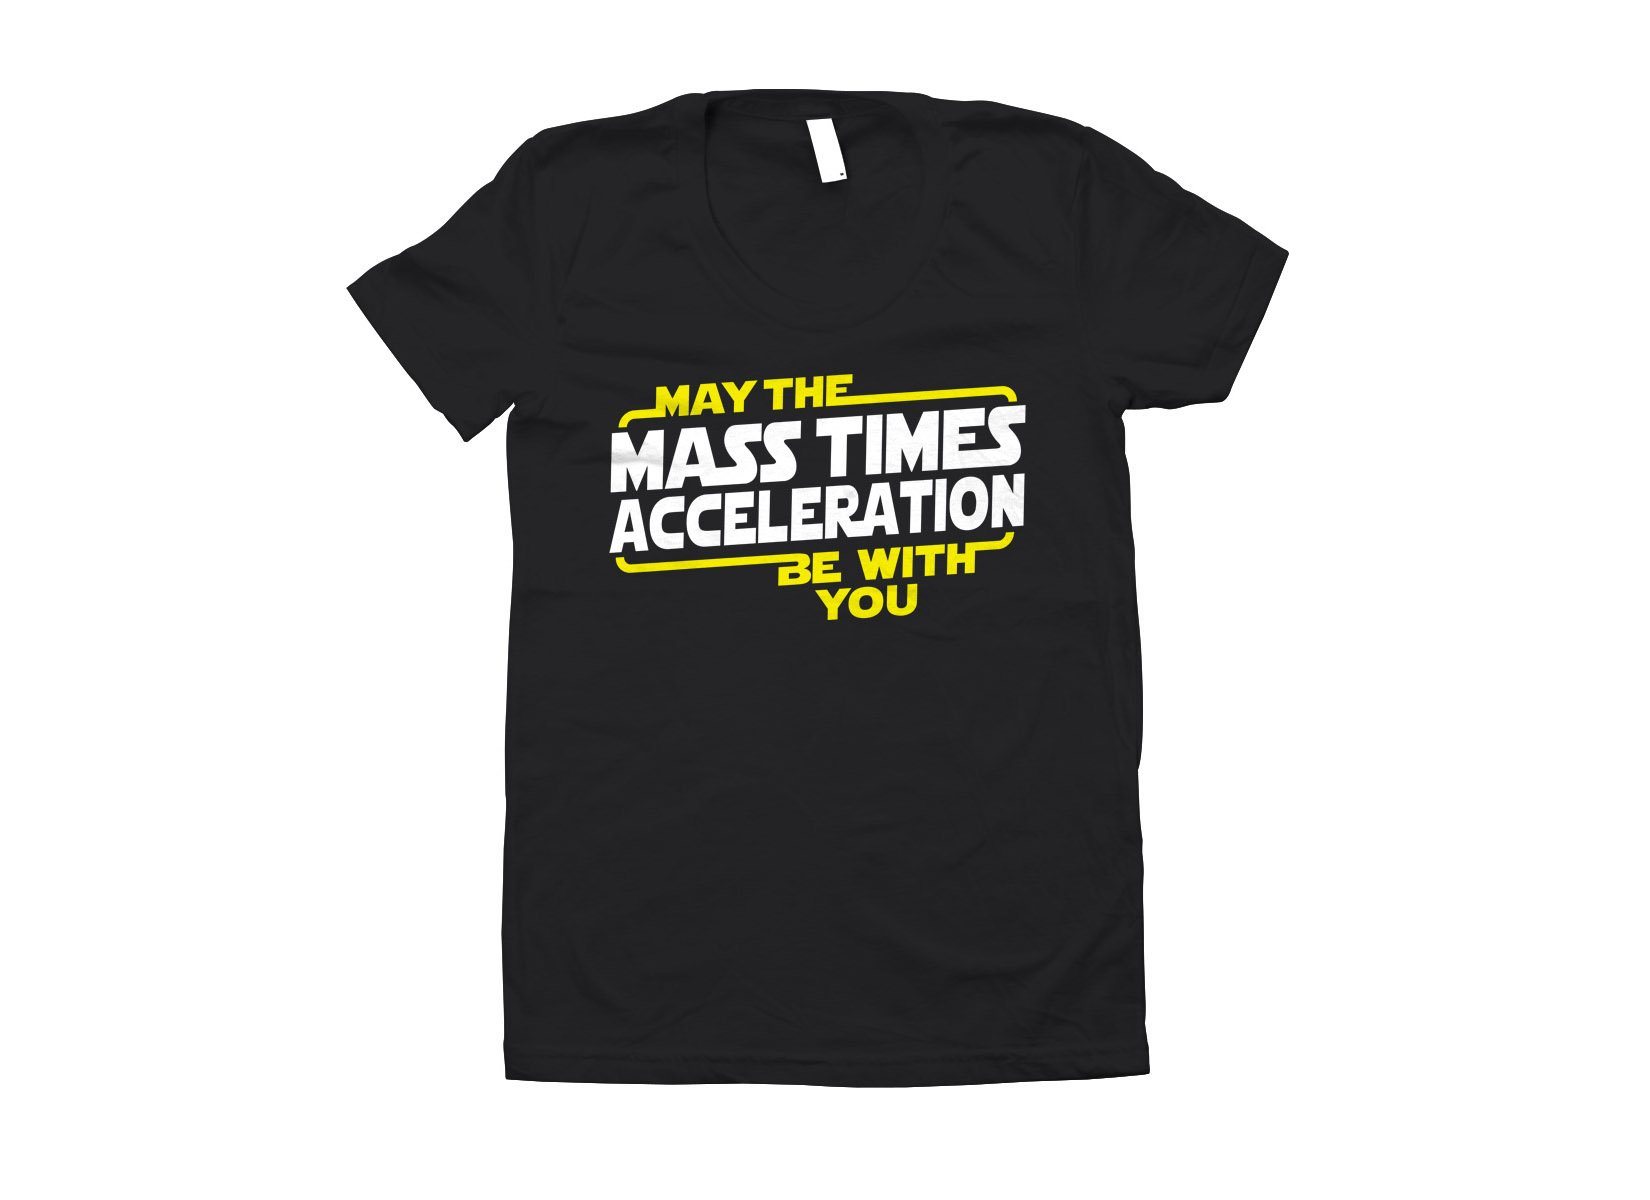 423fa4b2 May The Mass x Acceleration Be With You T-Shirt | SnorgTees